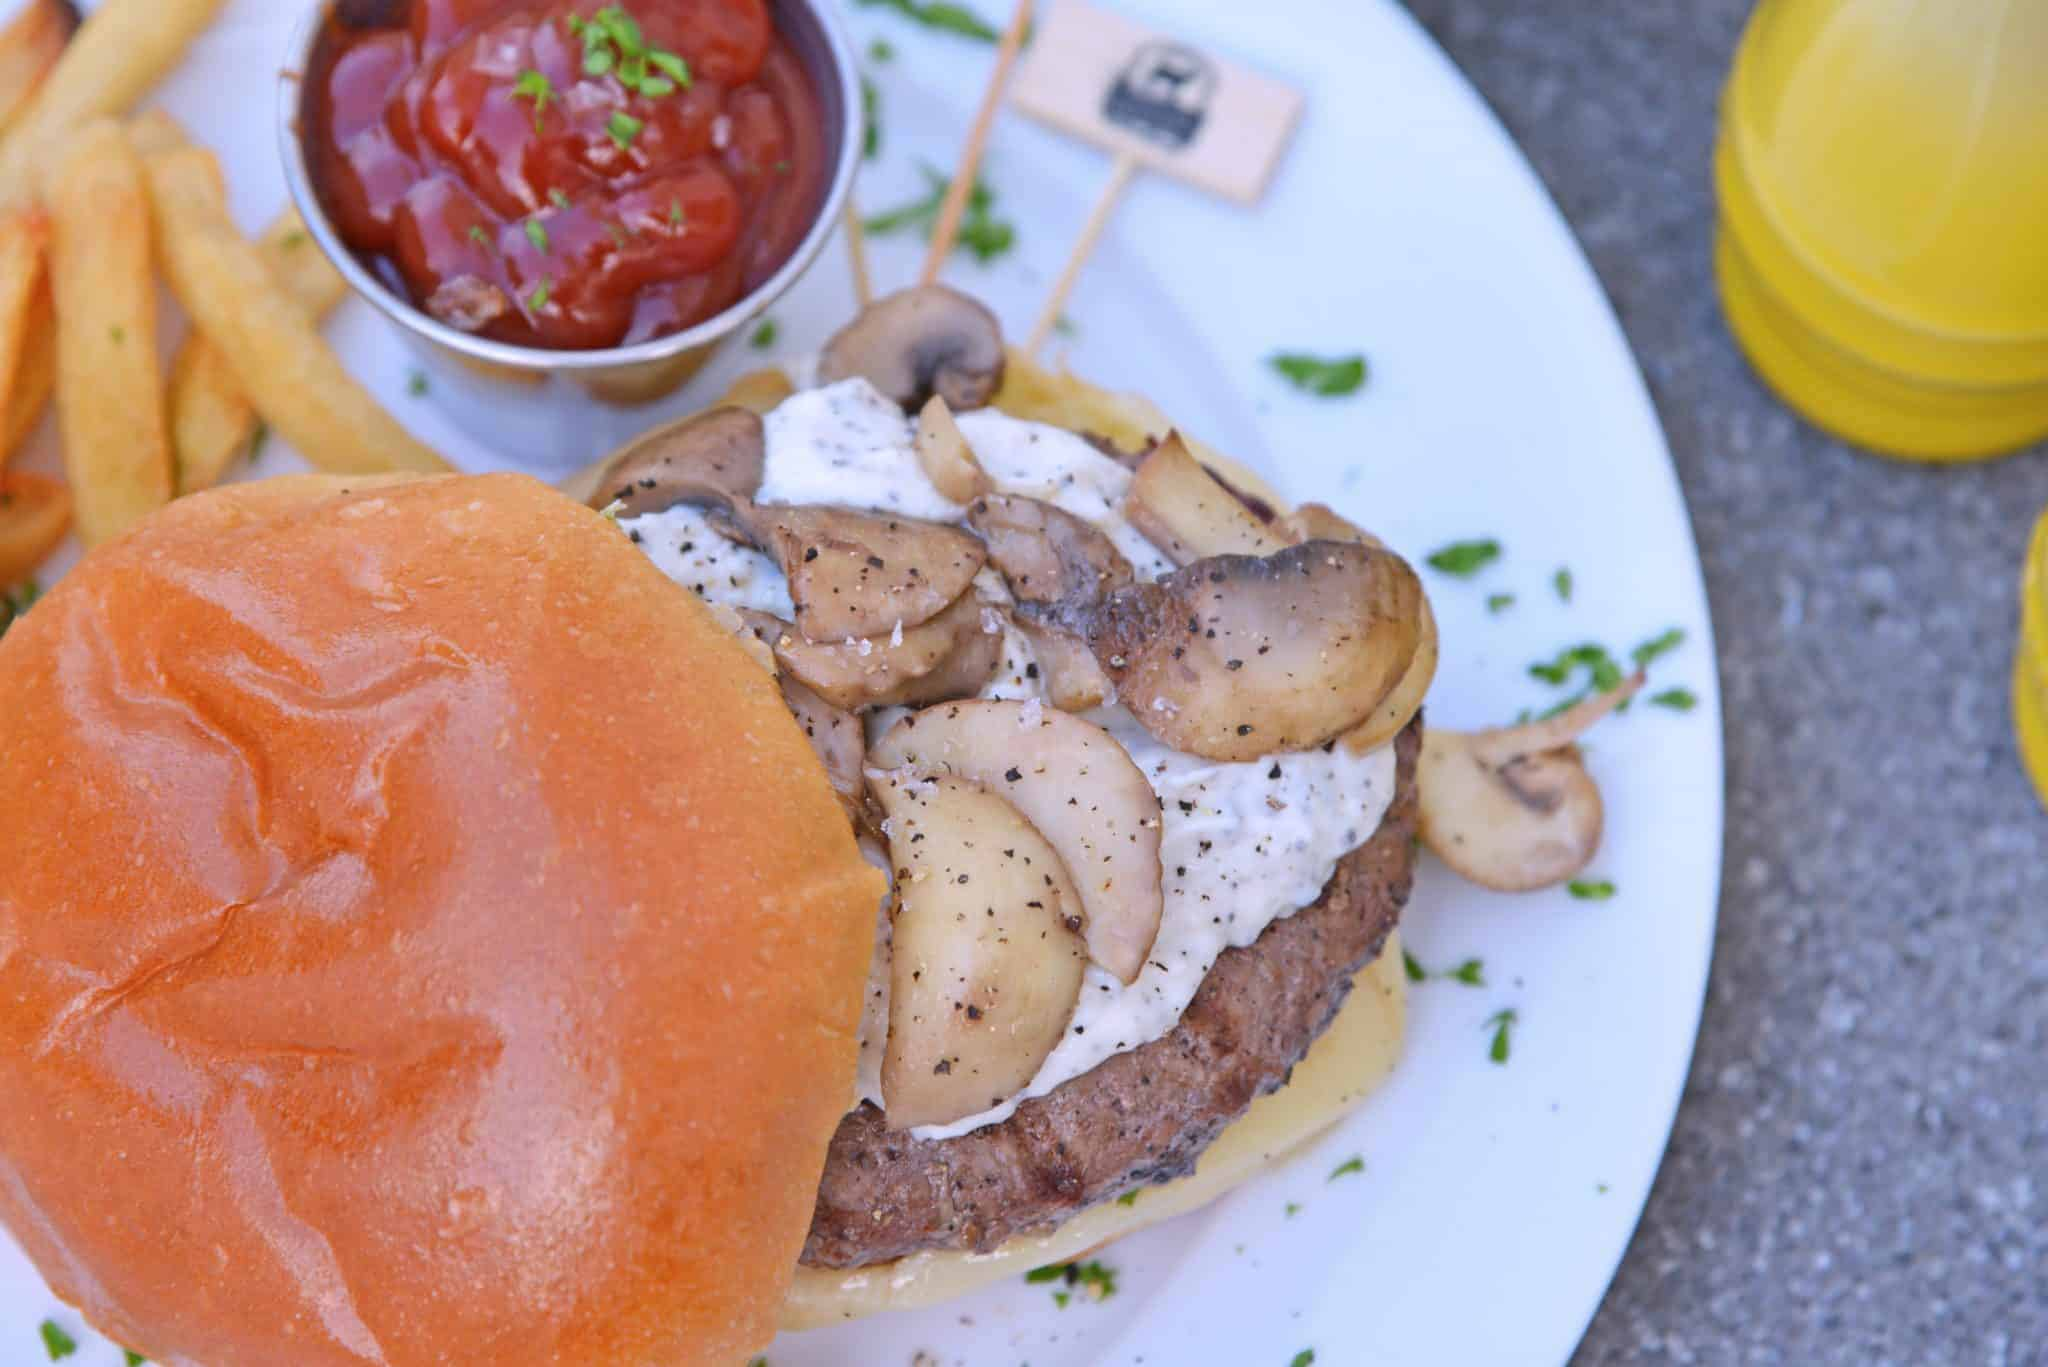 Garlic truffle burger with ketchup on a white plate